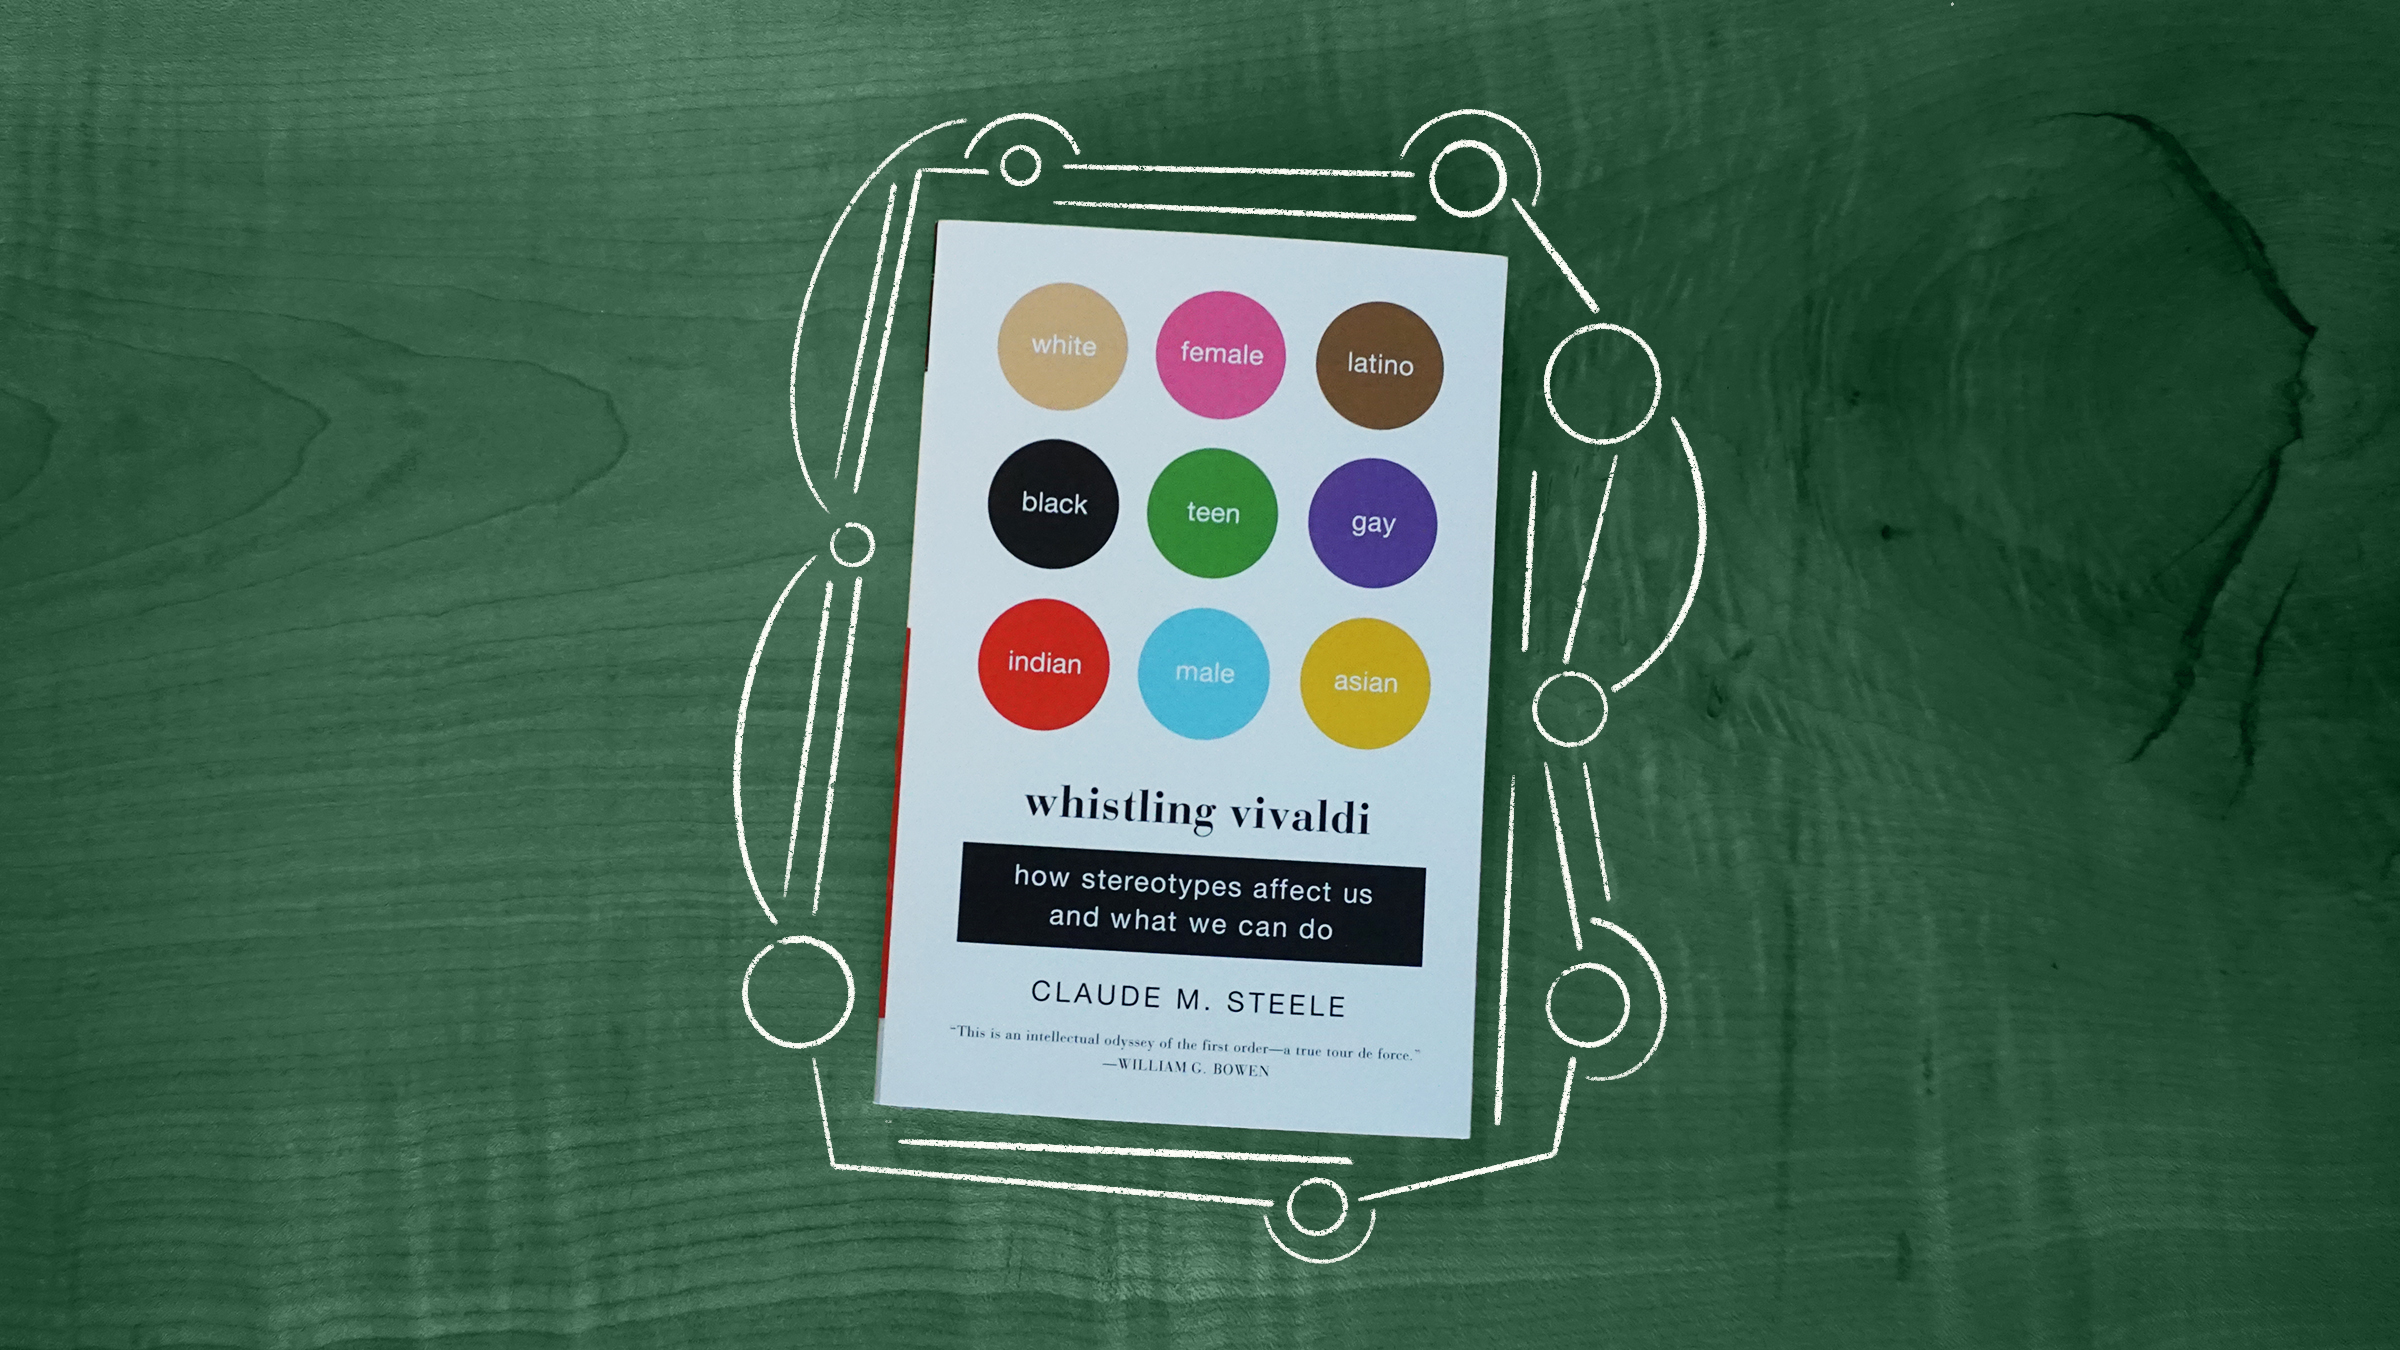 Illustration of the book cover for Whistling Vivaldi by Dr. Claude M. Steele